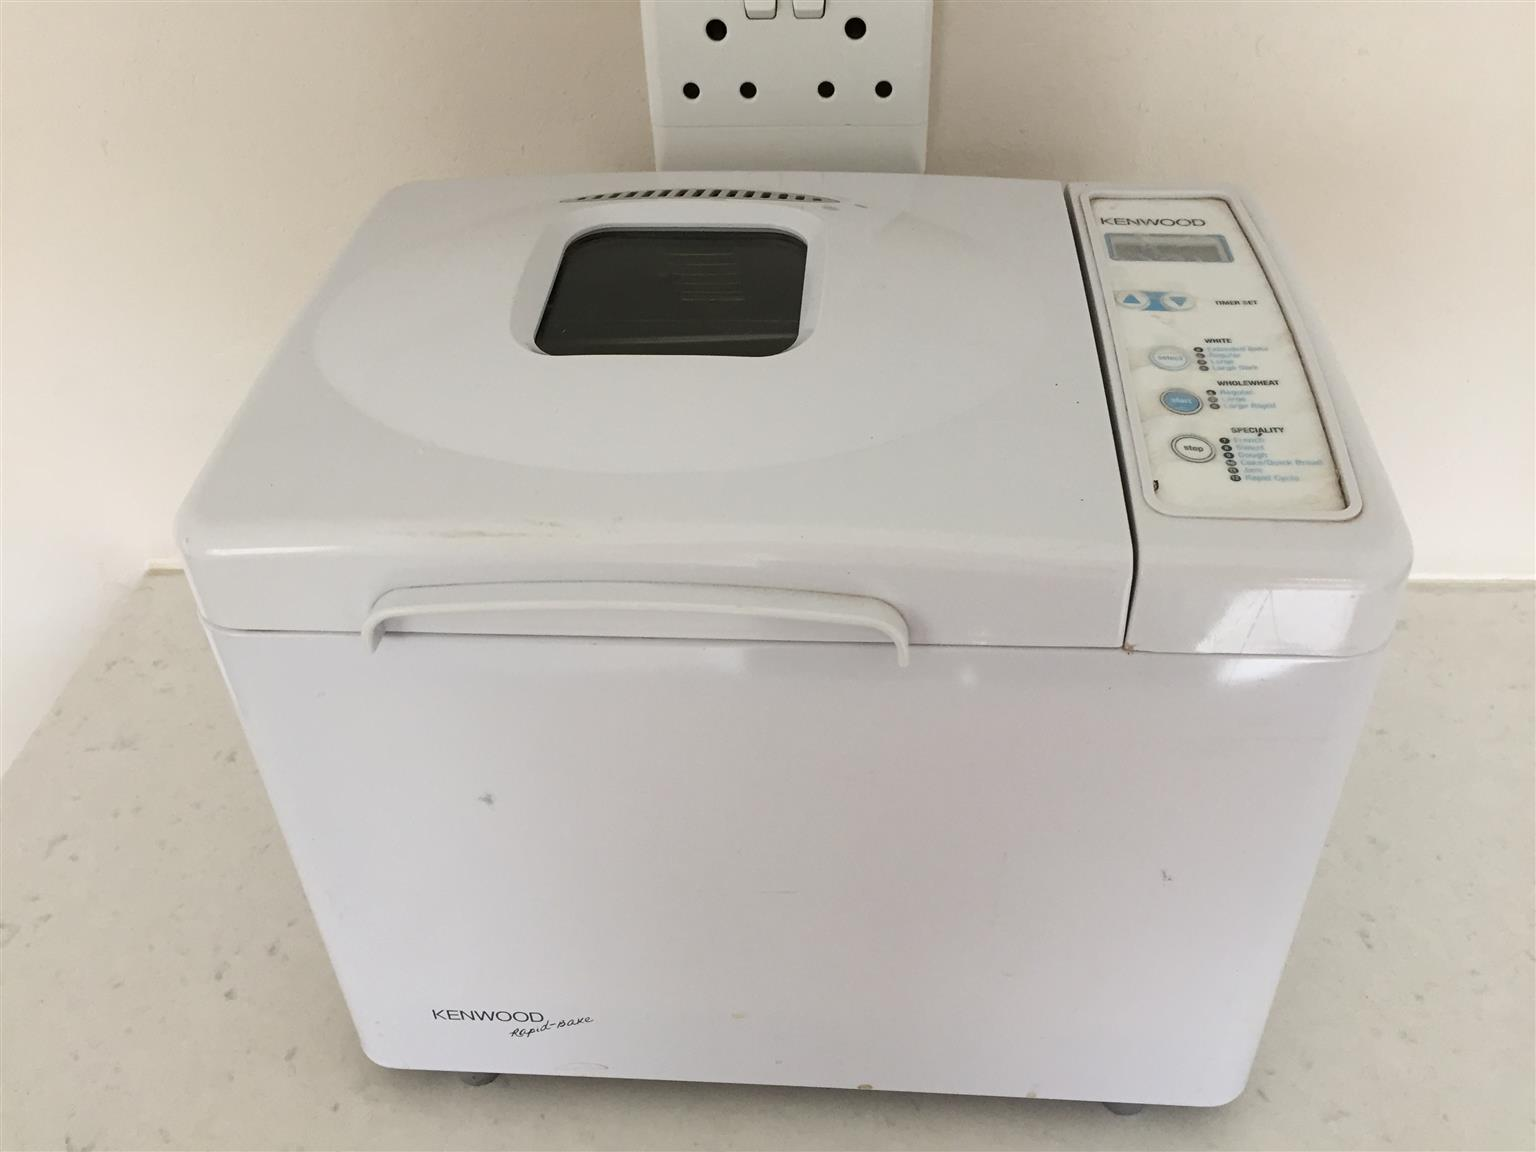 Kenwood Bread baker - Automatic mixing and baking